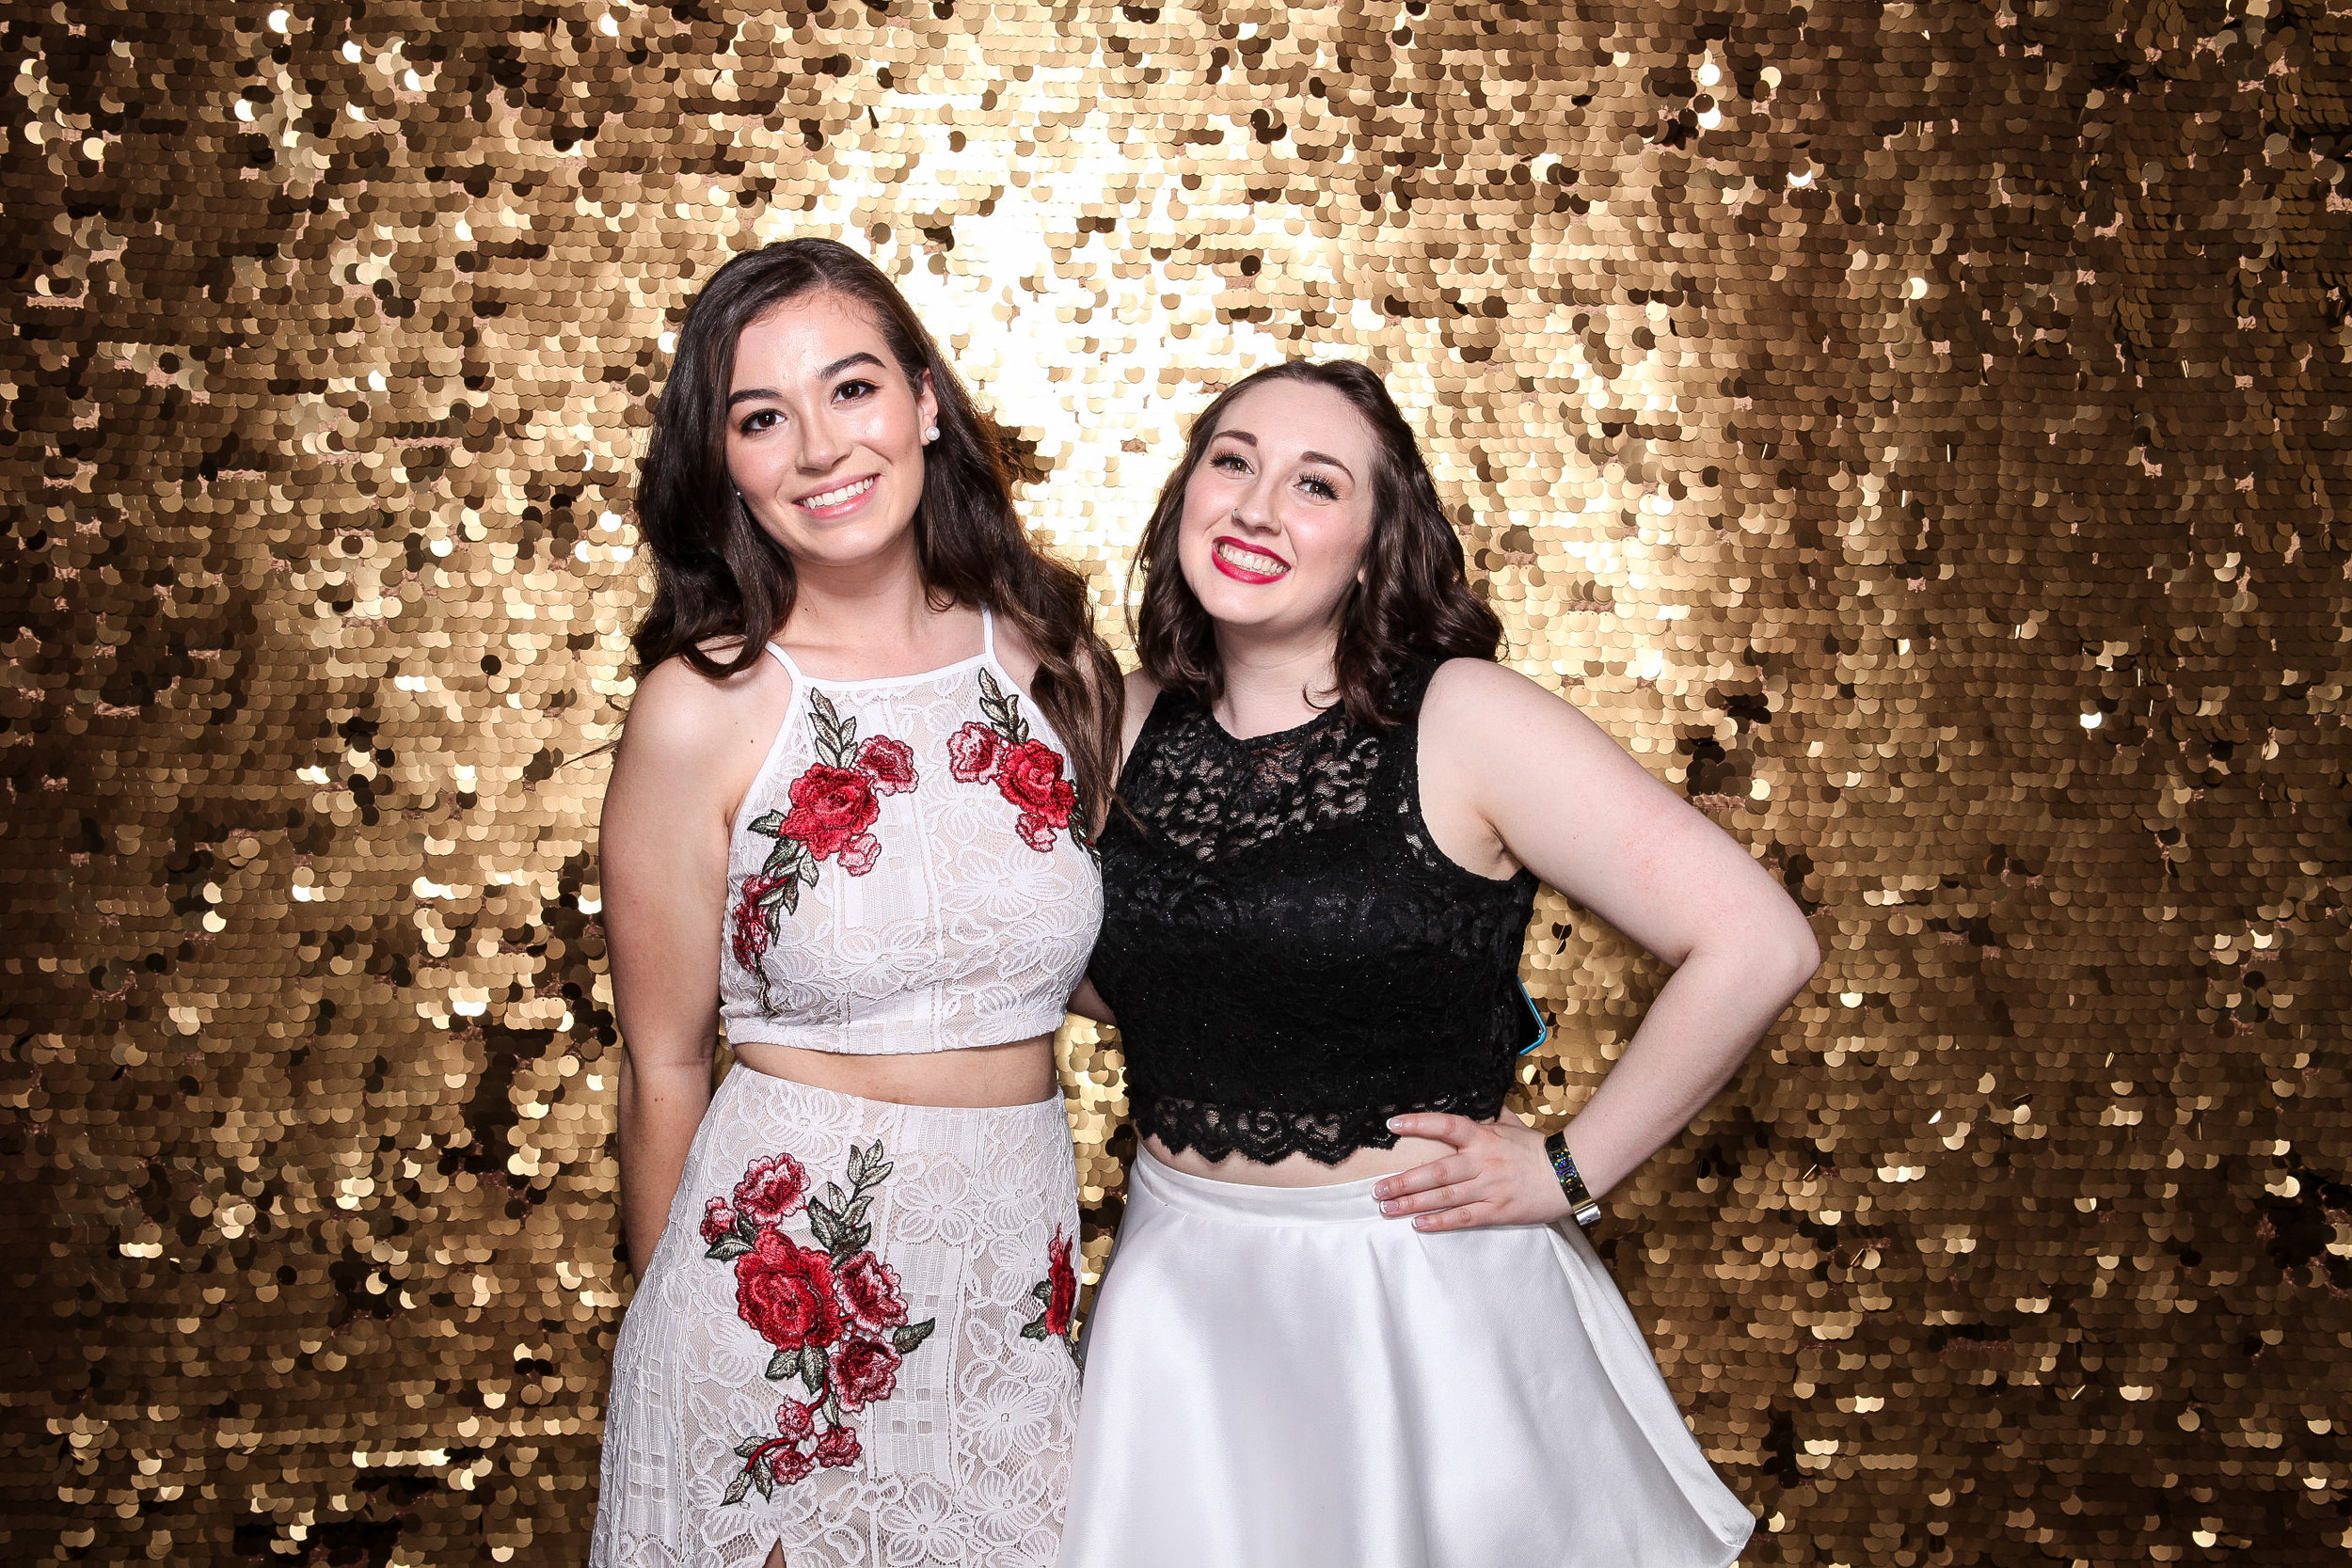 20190503_Adelphi_Senior_Formal-274.jpg